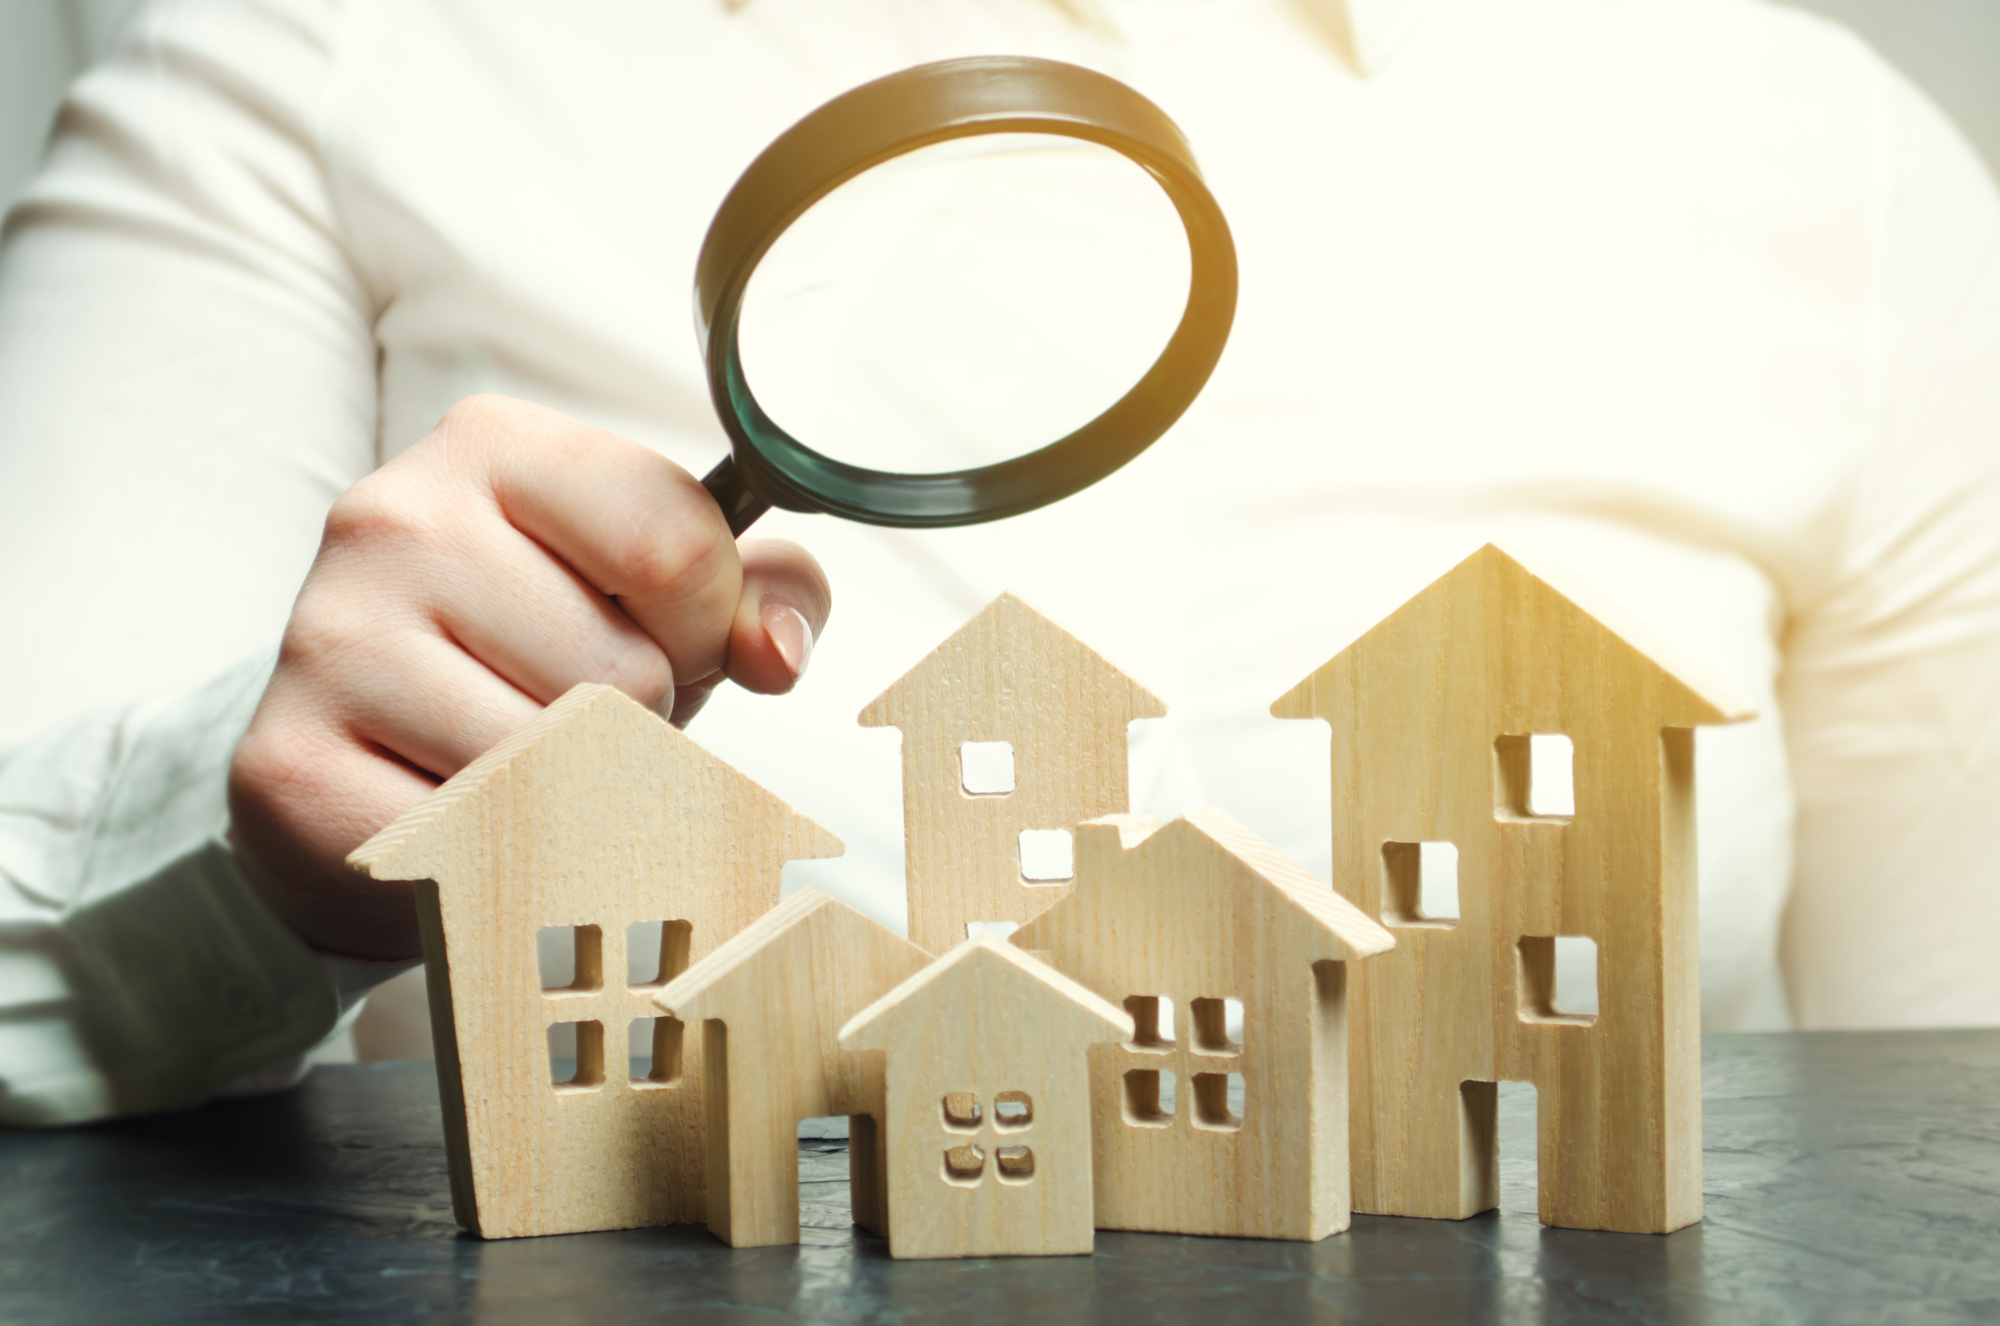 A woman is holding a magnifying glass over a wooden houses. Real estate appraiser. Find a house. Real estate market analysis